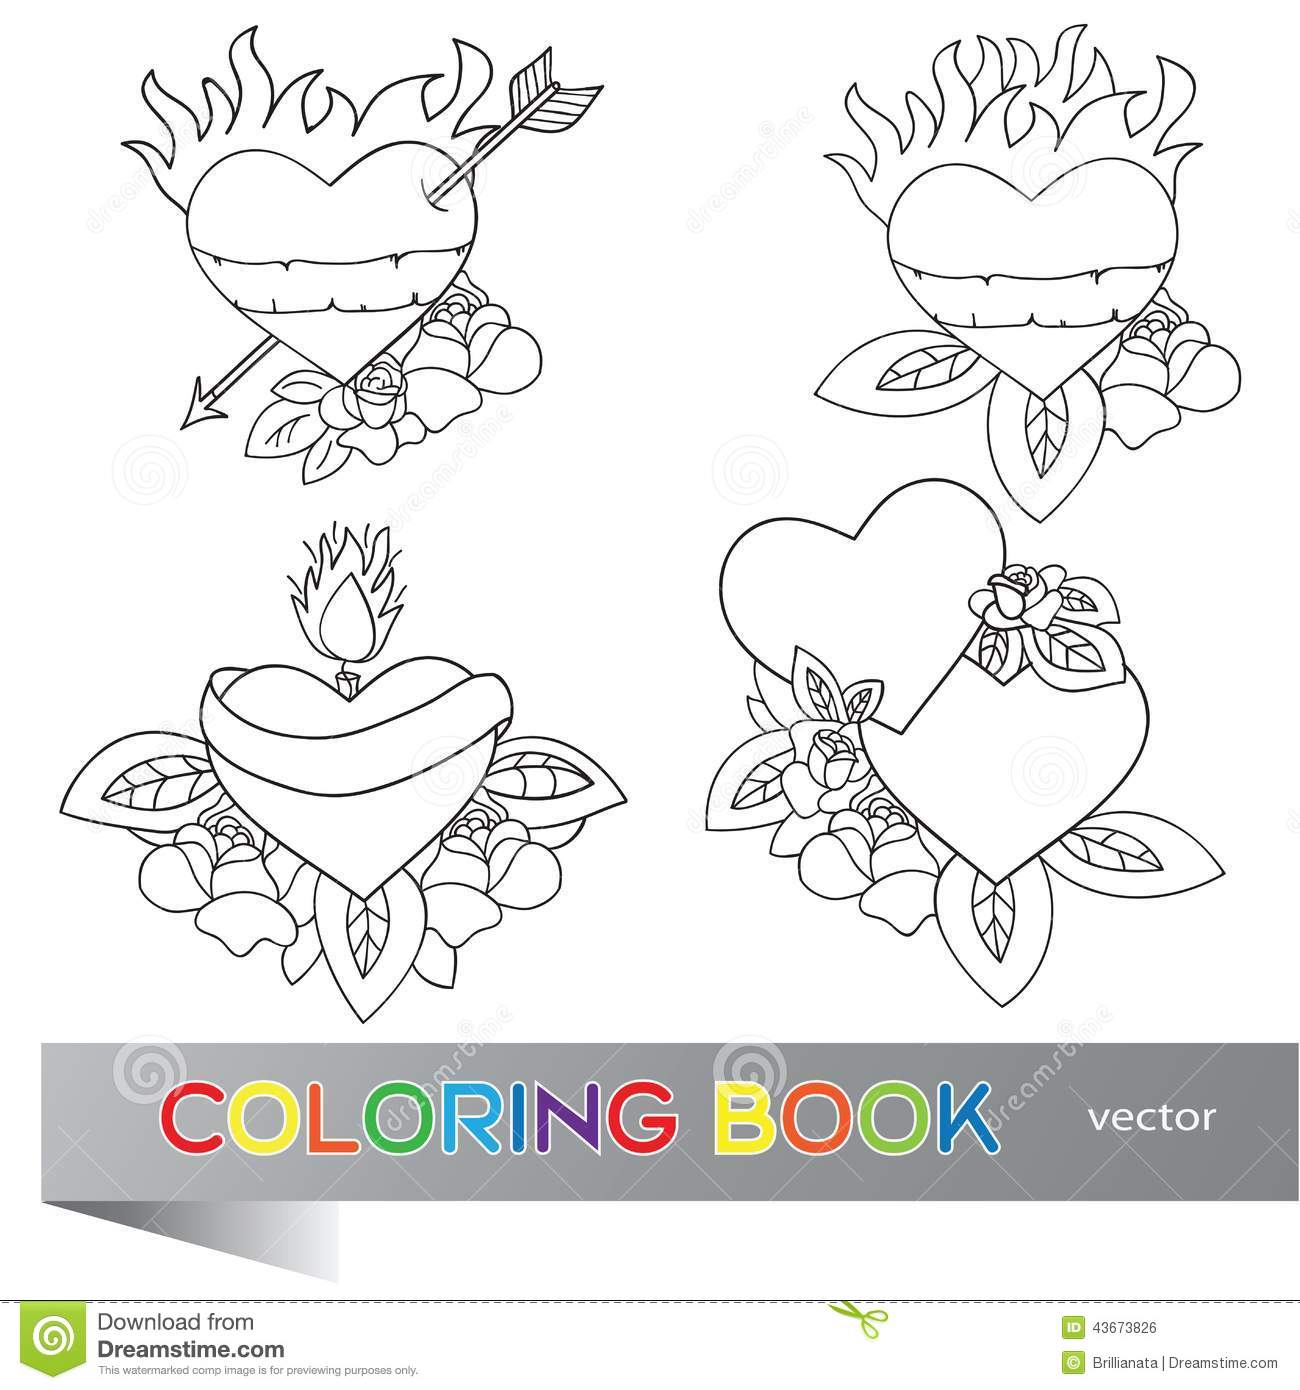 Royalty Free Vector Download Heart Tattoo Design